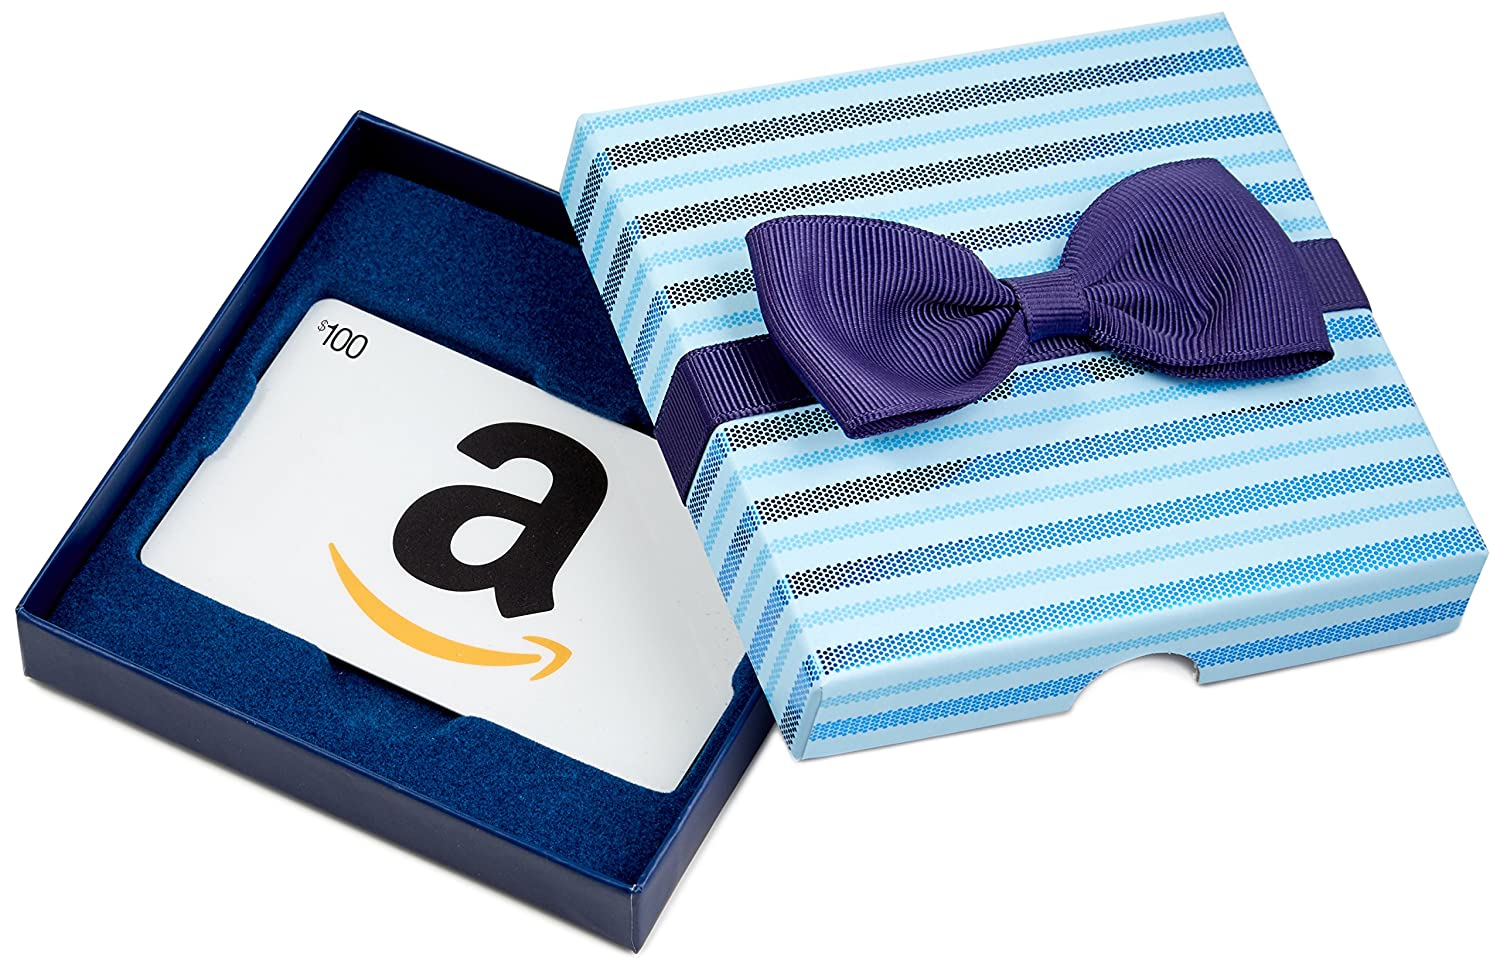 Amazon.ca Gift Card in a Blue Bow Tie Box (Classic White Card Design) Amazon.com.ca Inc.